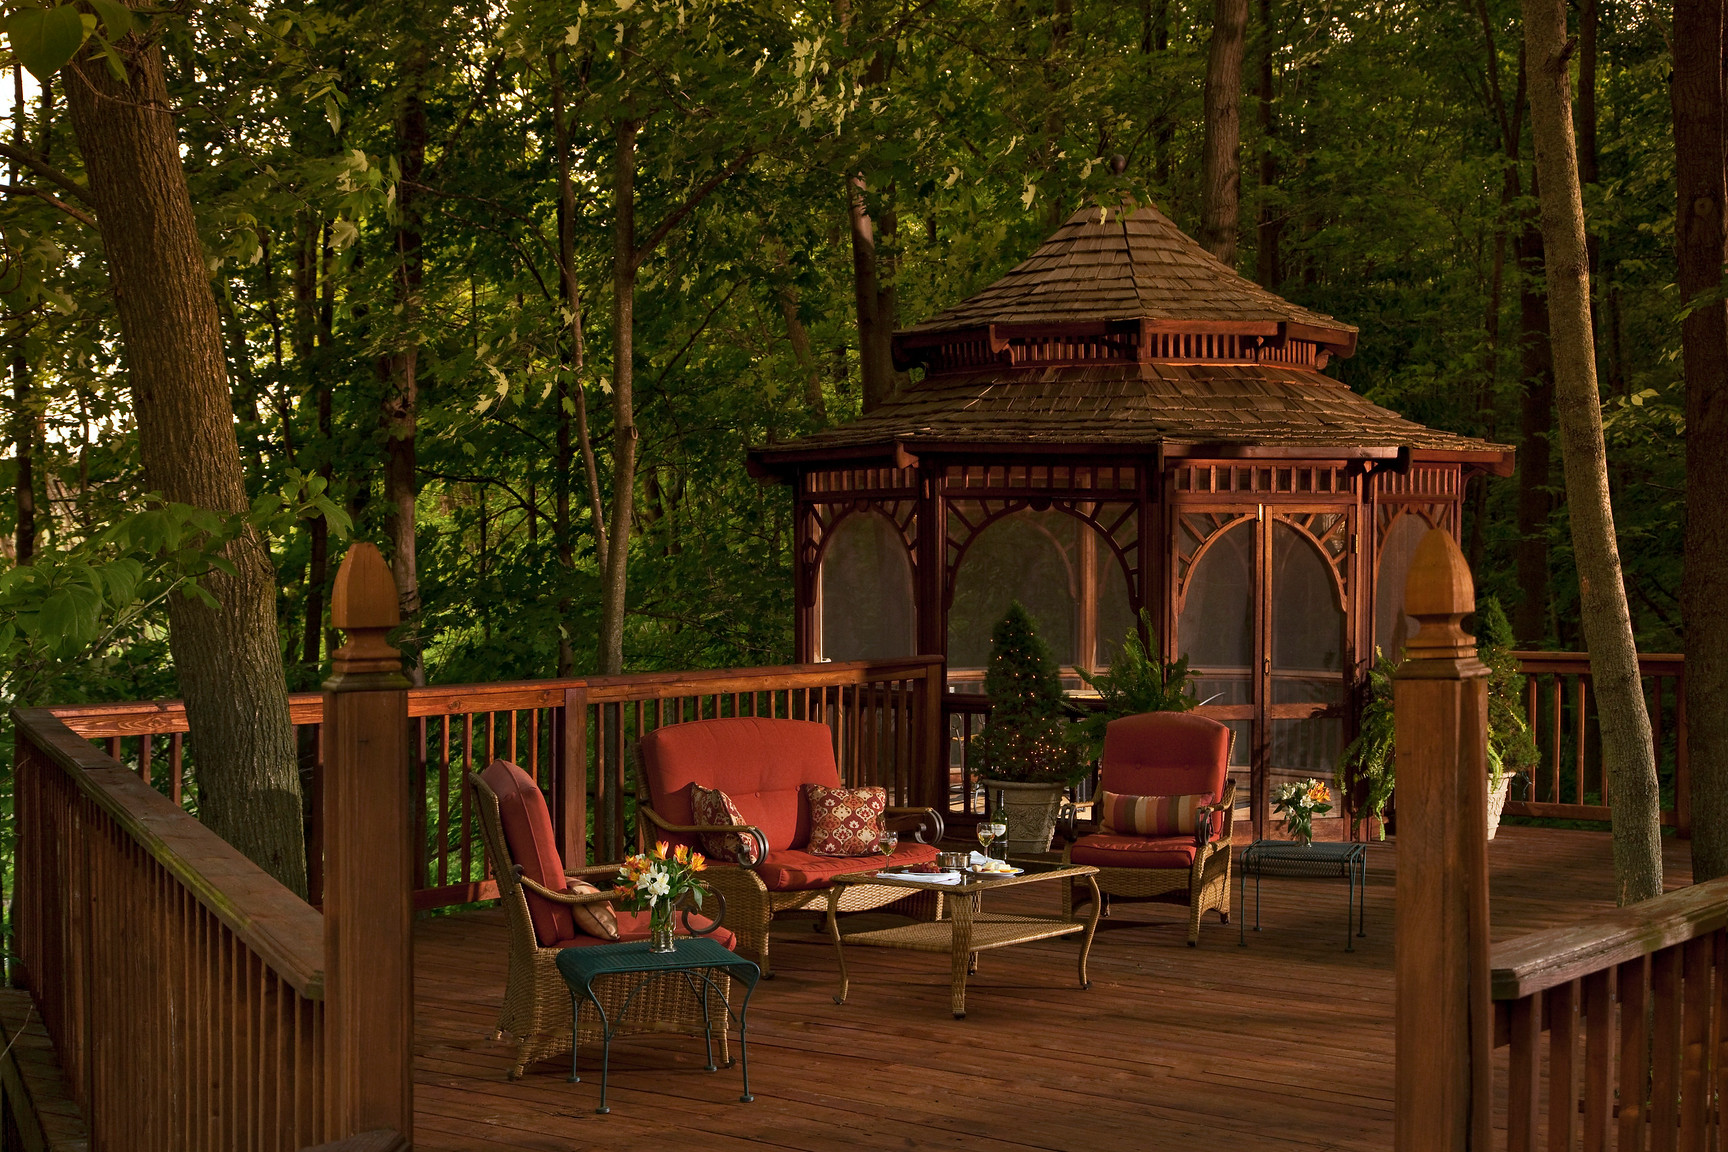 Romantic getaways in Michigan with a gazebo